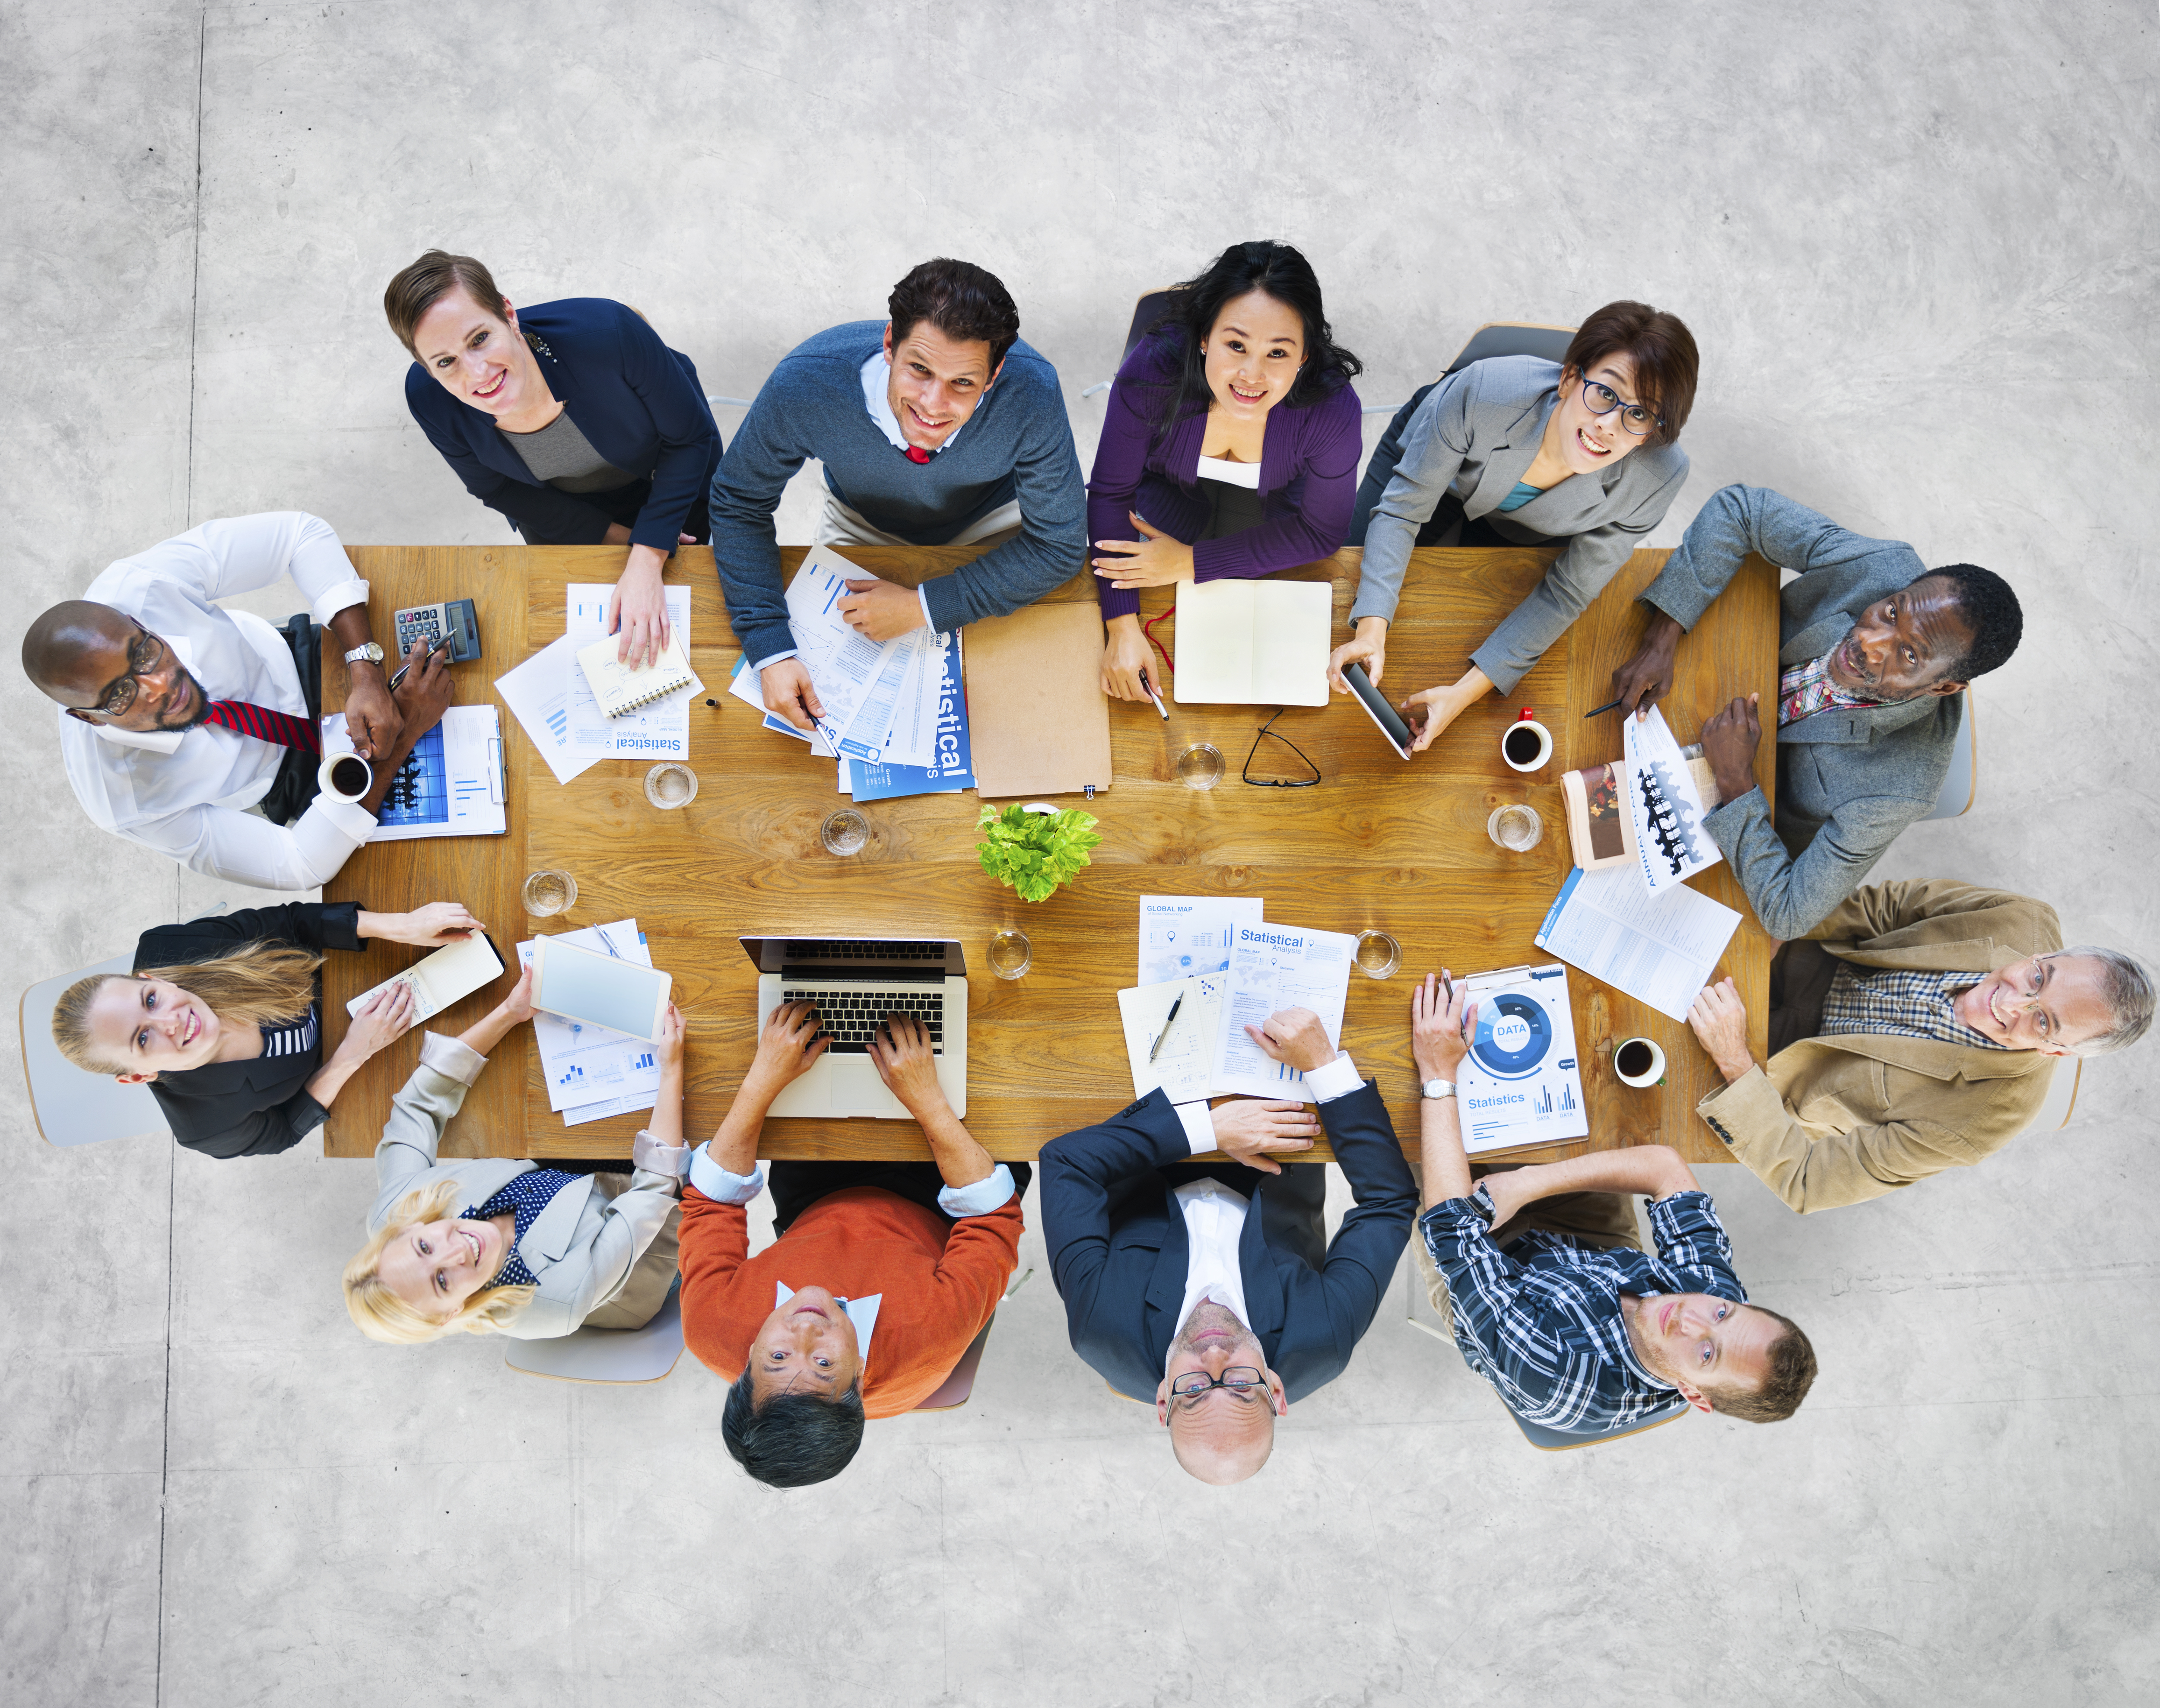 Multi-Ethnic Group of People in a Meeting Looking Up